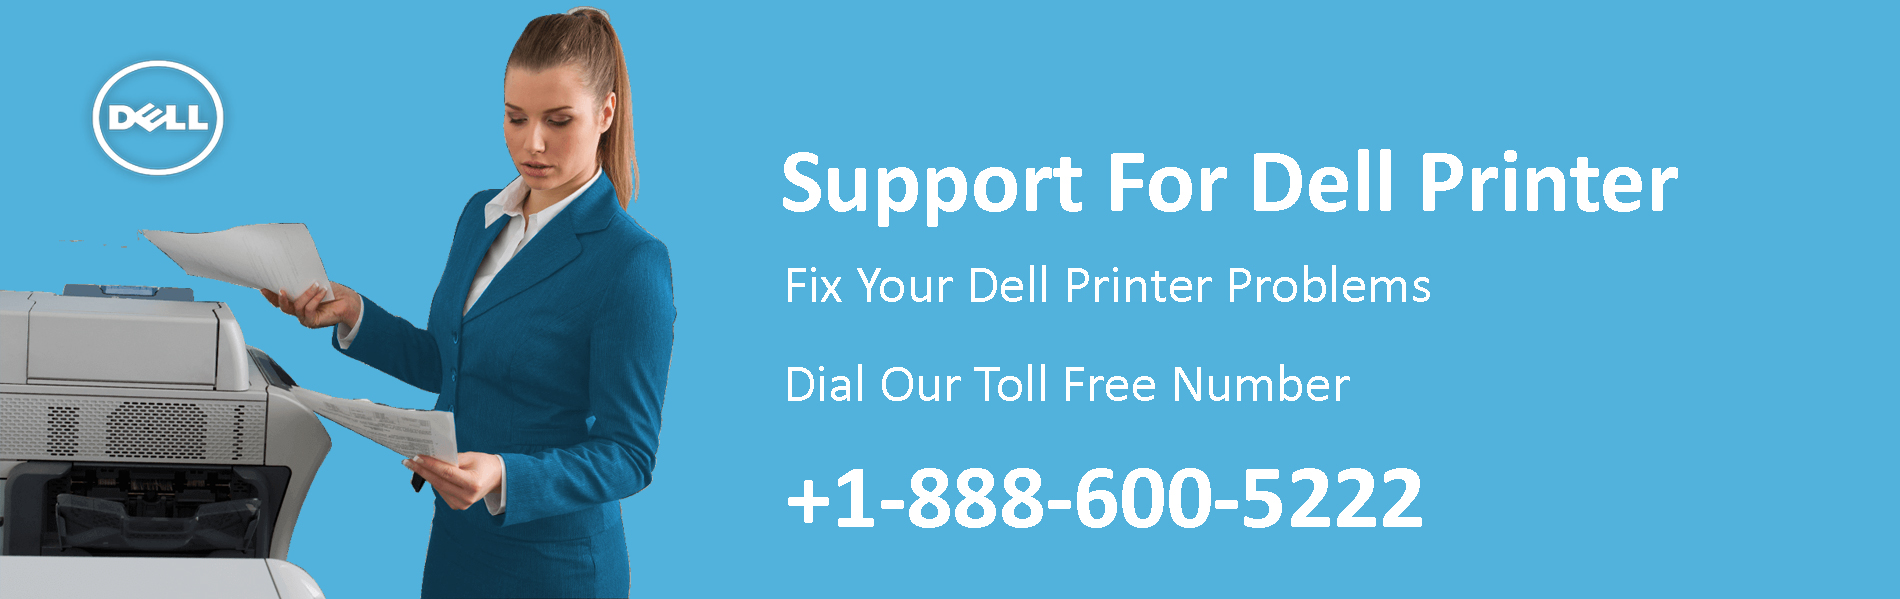 Dell Printer Support Phone Number +1-888-600-5222